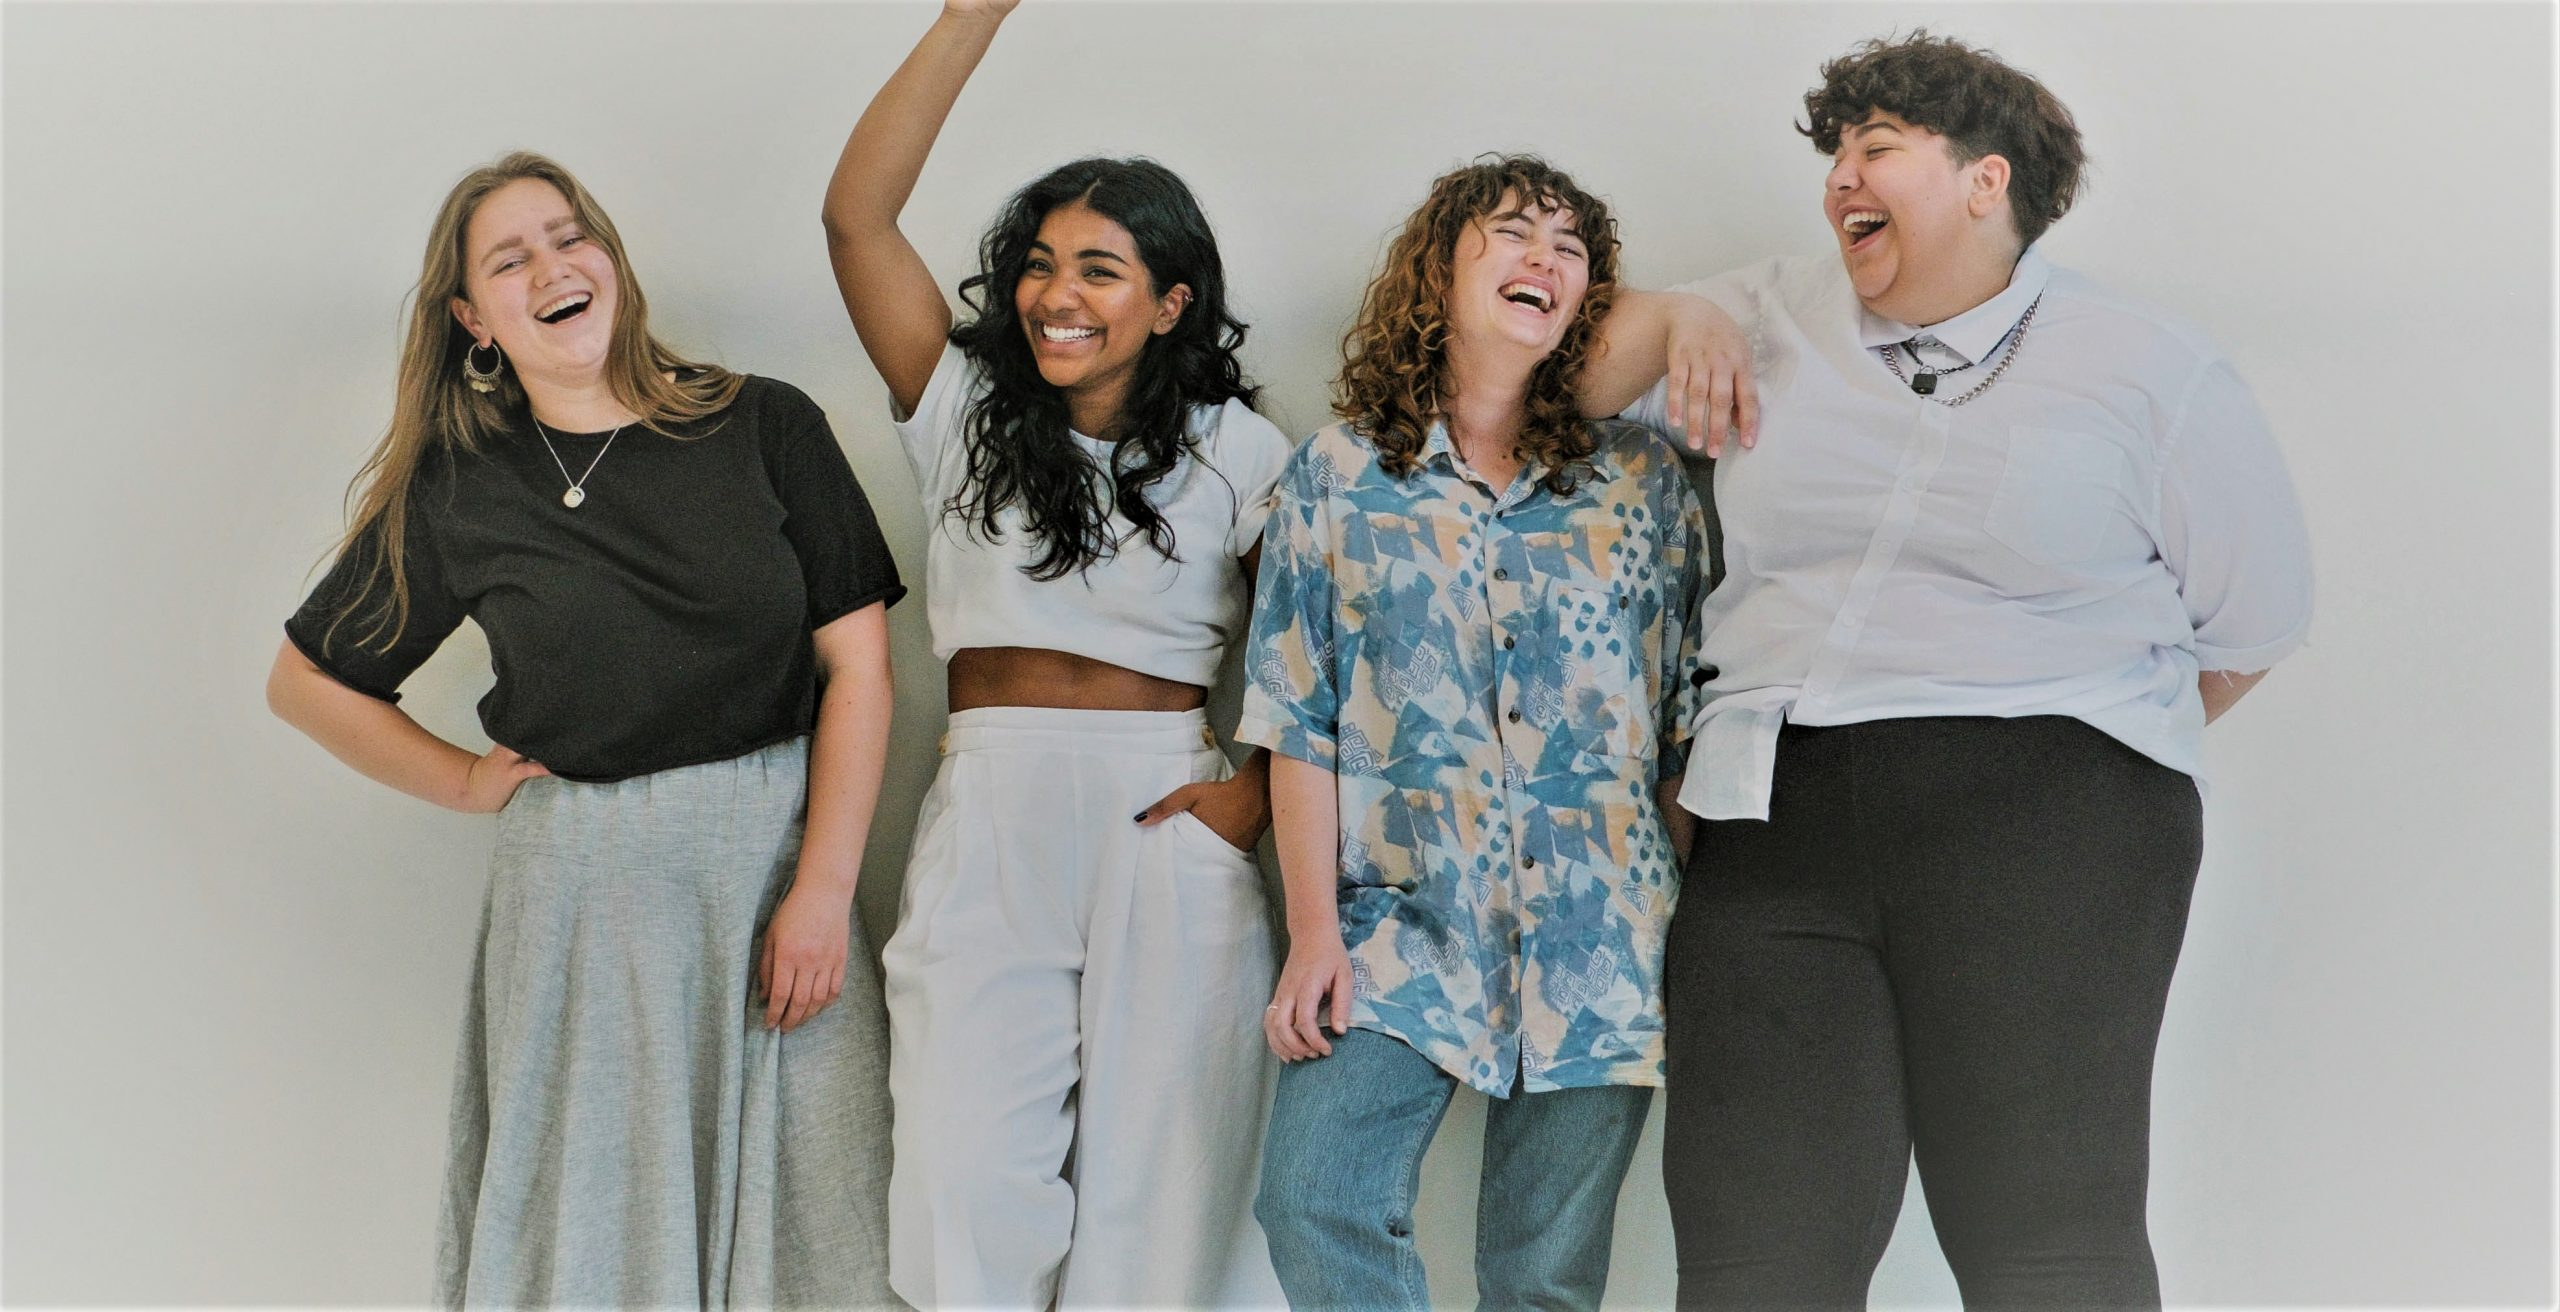 Four women laughing together.